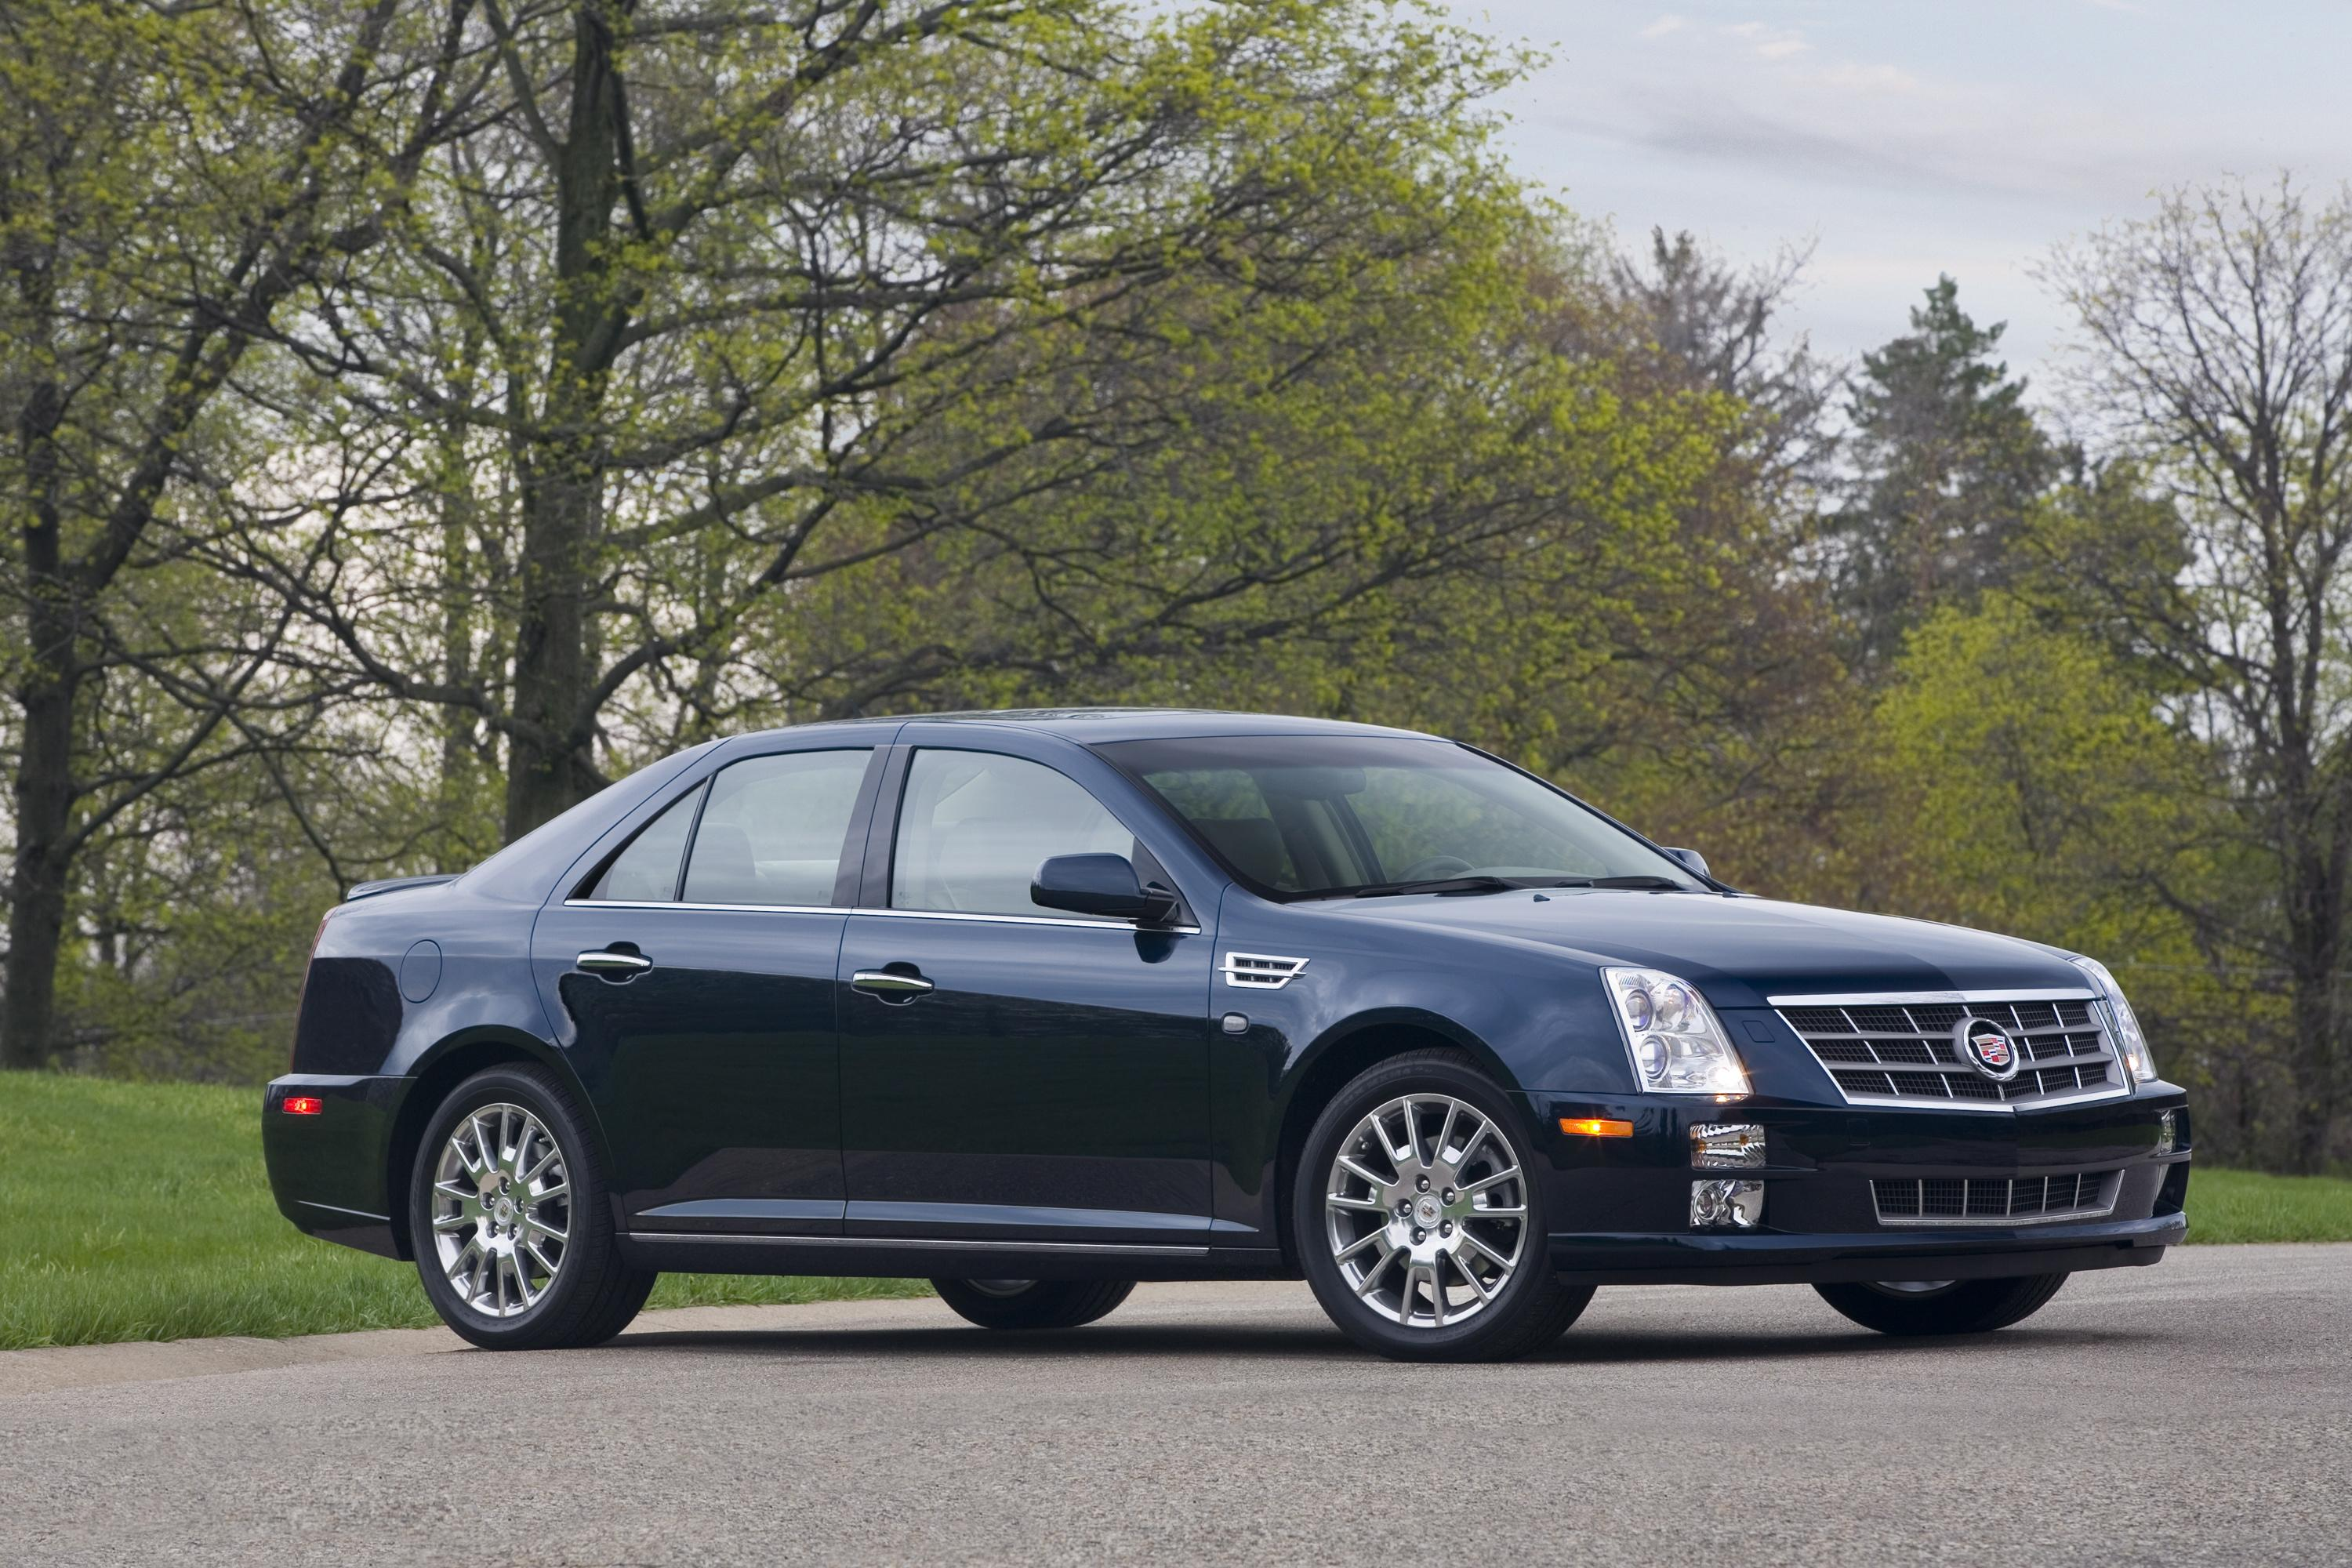 2009 Cadillac STS | Top Speed